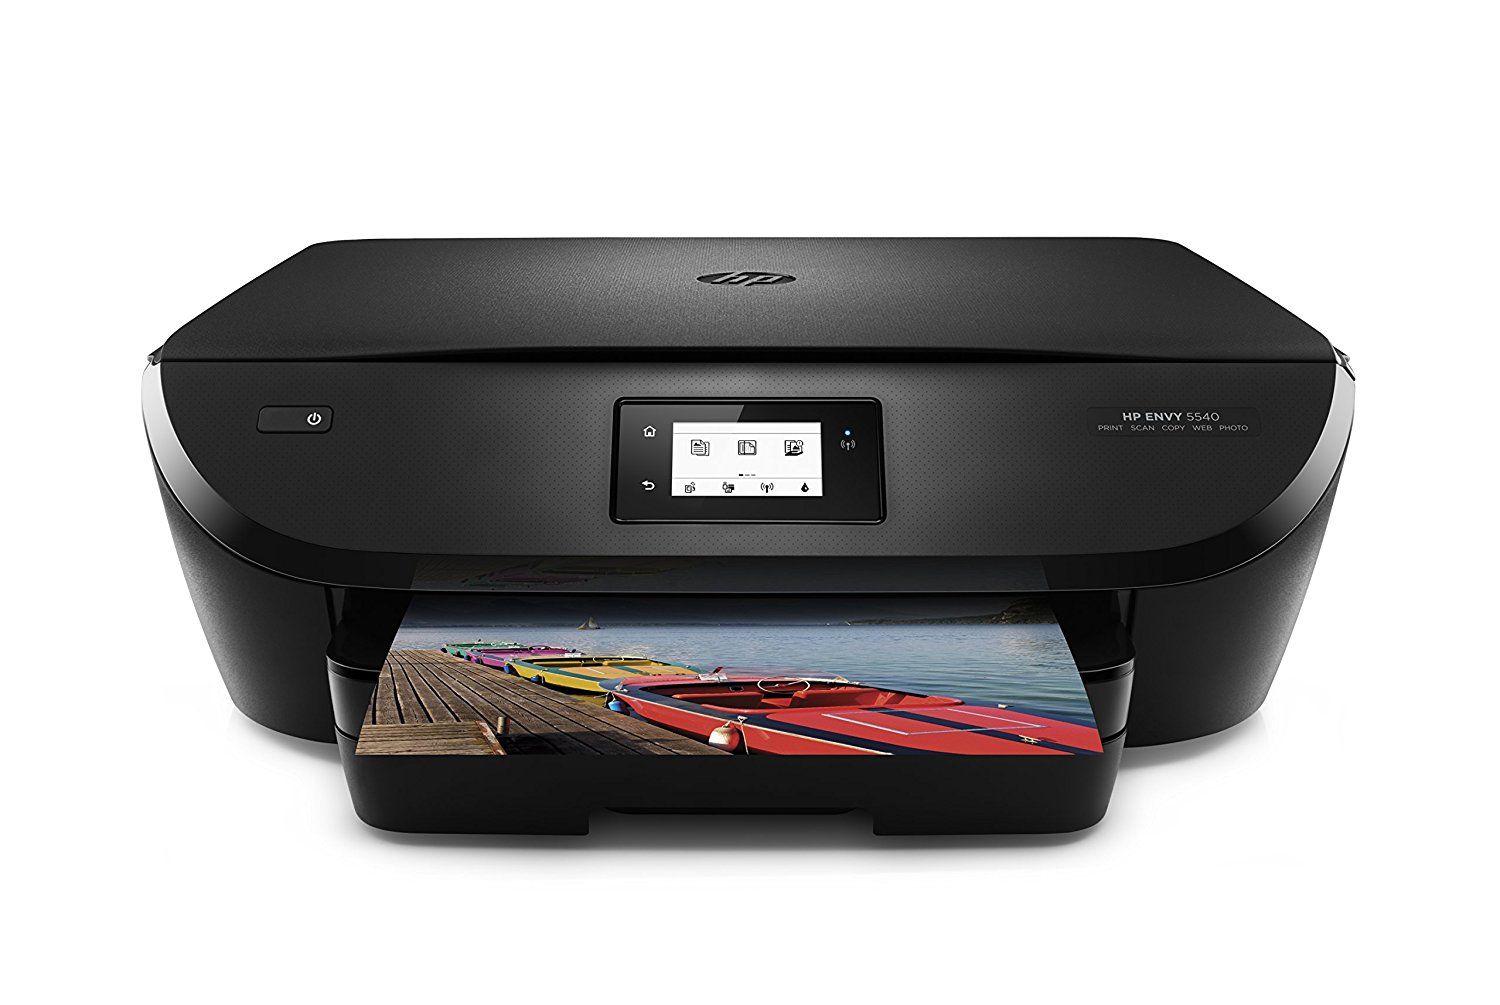 Install HP Envy 5540 Driver